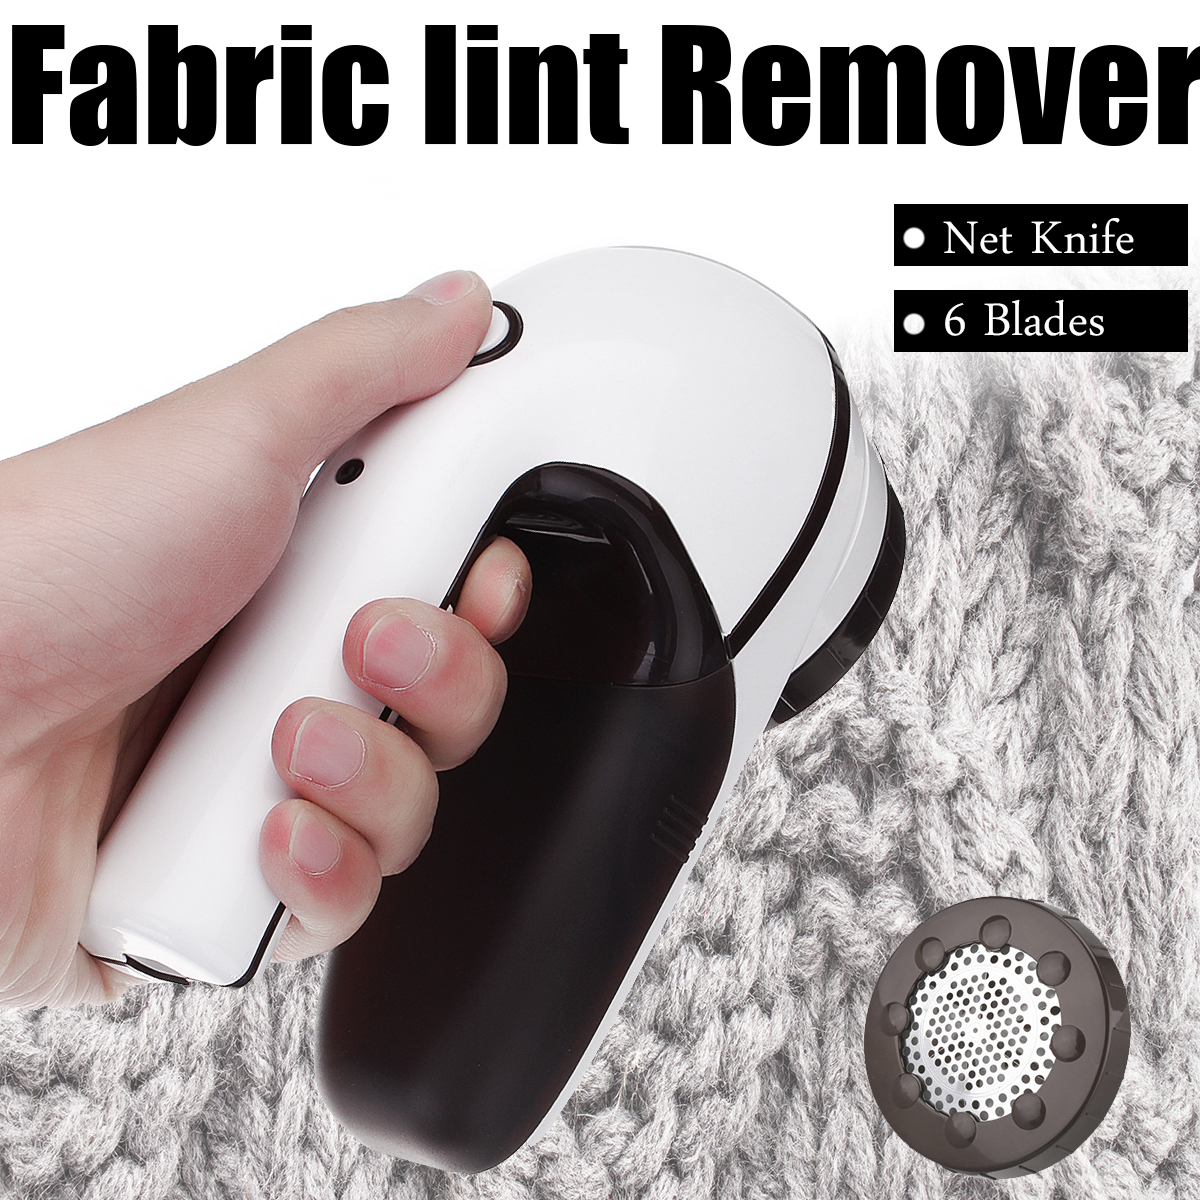 цена на Portable USB Travel Ball Hair Trimmer with Rotary Handle Rechargeable Lint Remover Sweaters Wool Fabric Shaving Down Device